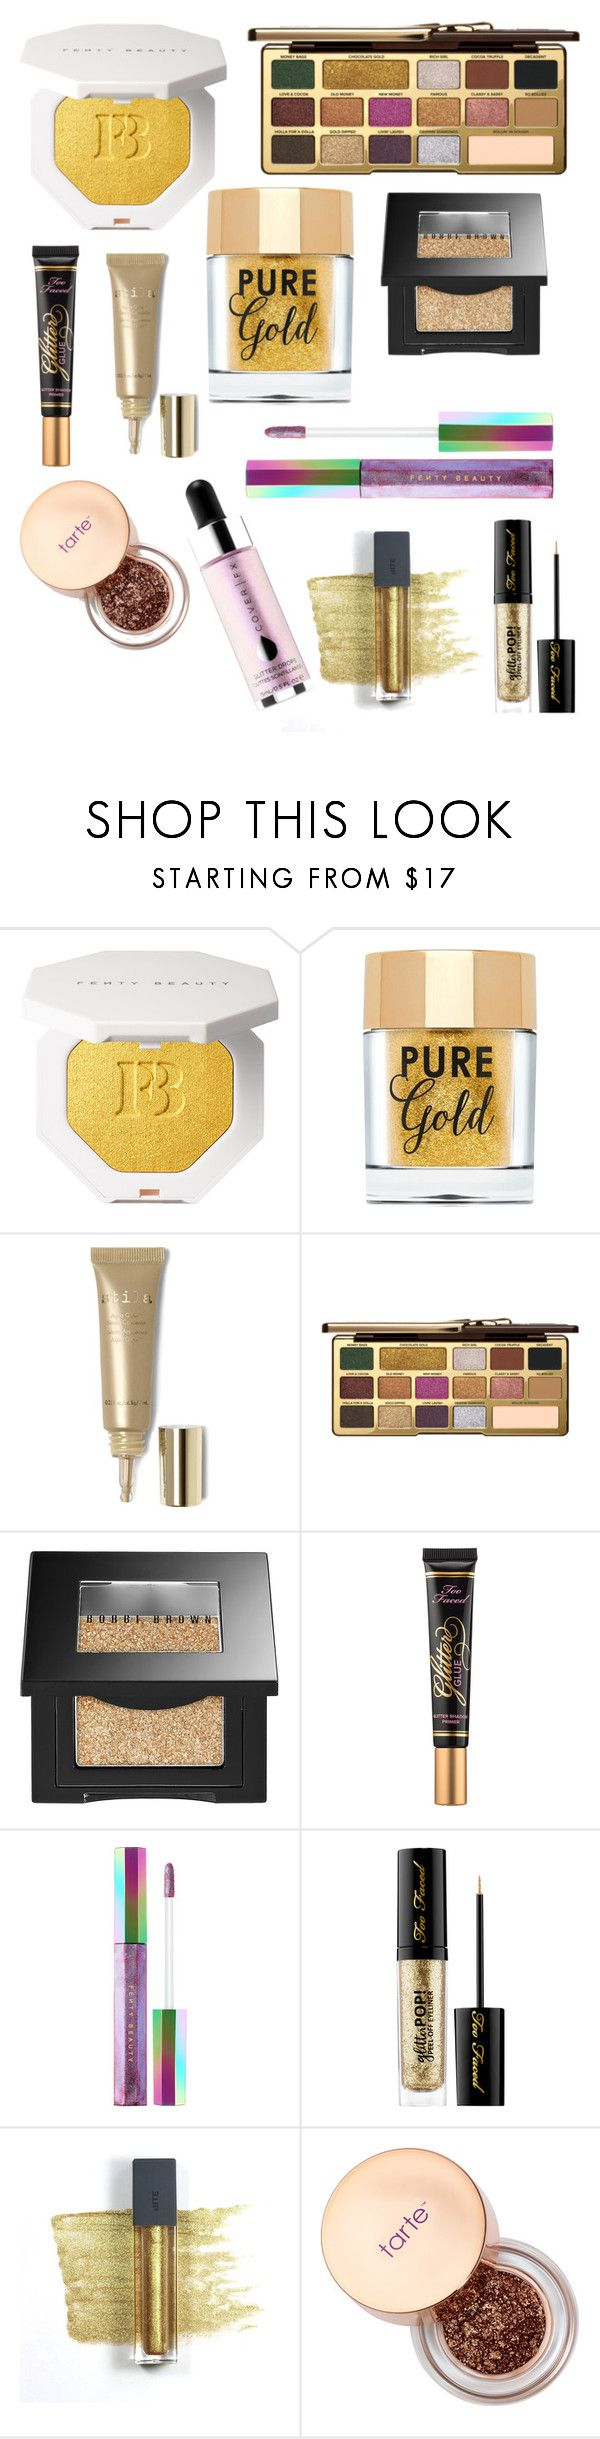 """#PolyPresents: Sparkly Beauty"" by fashion0203 ❤ liked on Polyvore featuring beauty, Too Faced Cosmetics, Stila, Bobbi Brown Cosmetics, Puma, Sephora Collection, Bite, Cover FX, contestentry and polyPresents"